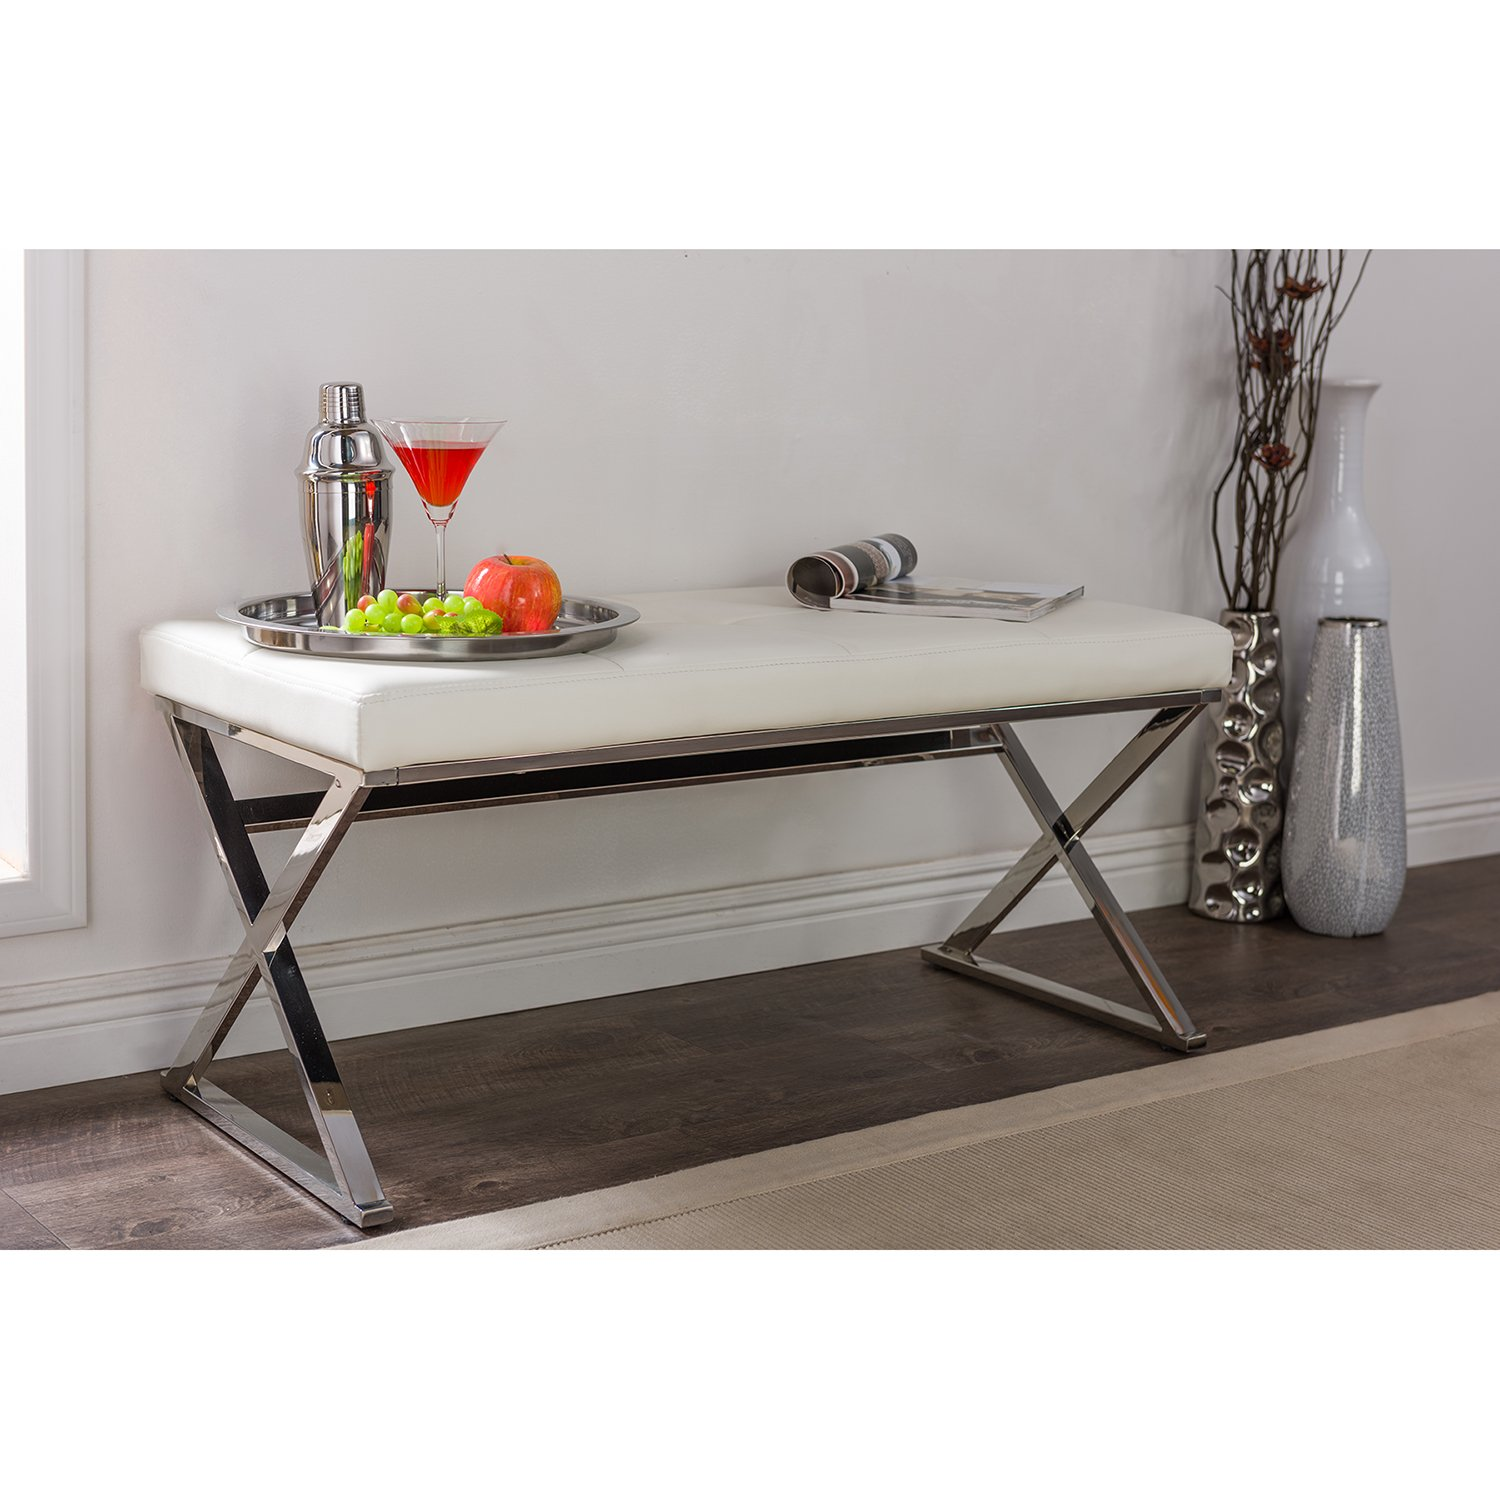 Baxton Studio Wholesale Interiors Herald Modern and Contemporary Faux Leather Upholstered Rectangle Bench, Stainless Steel and White